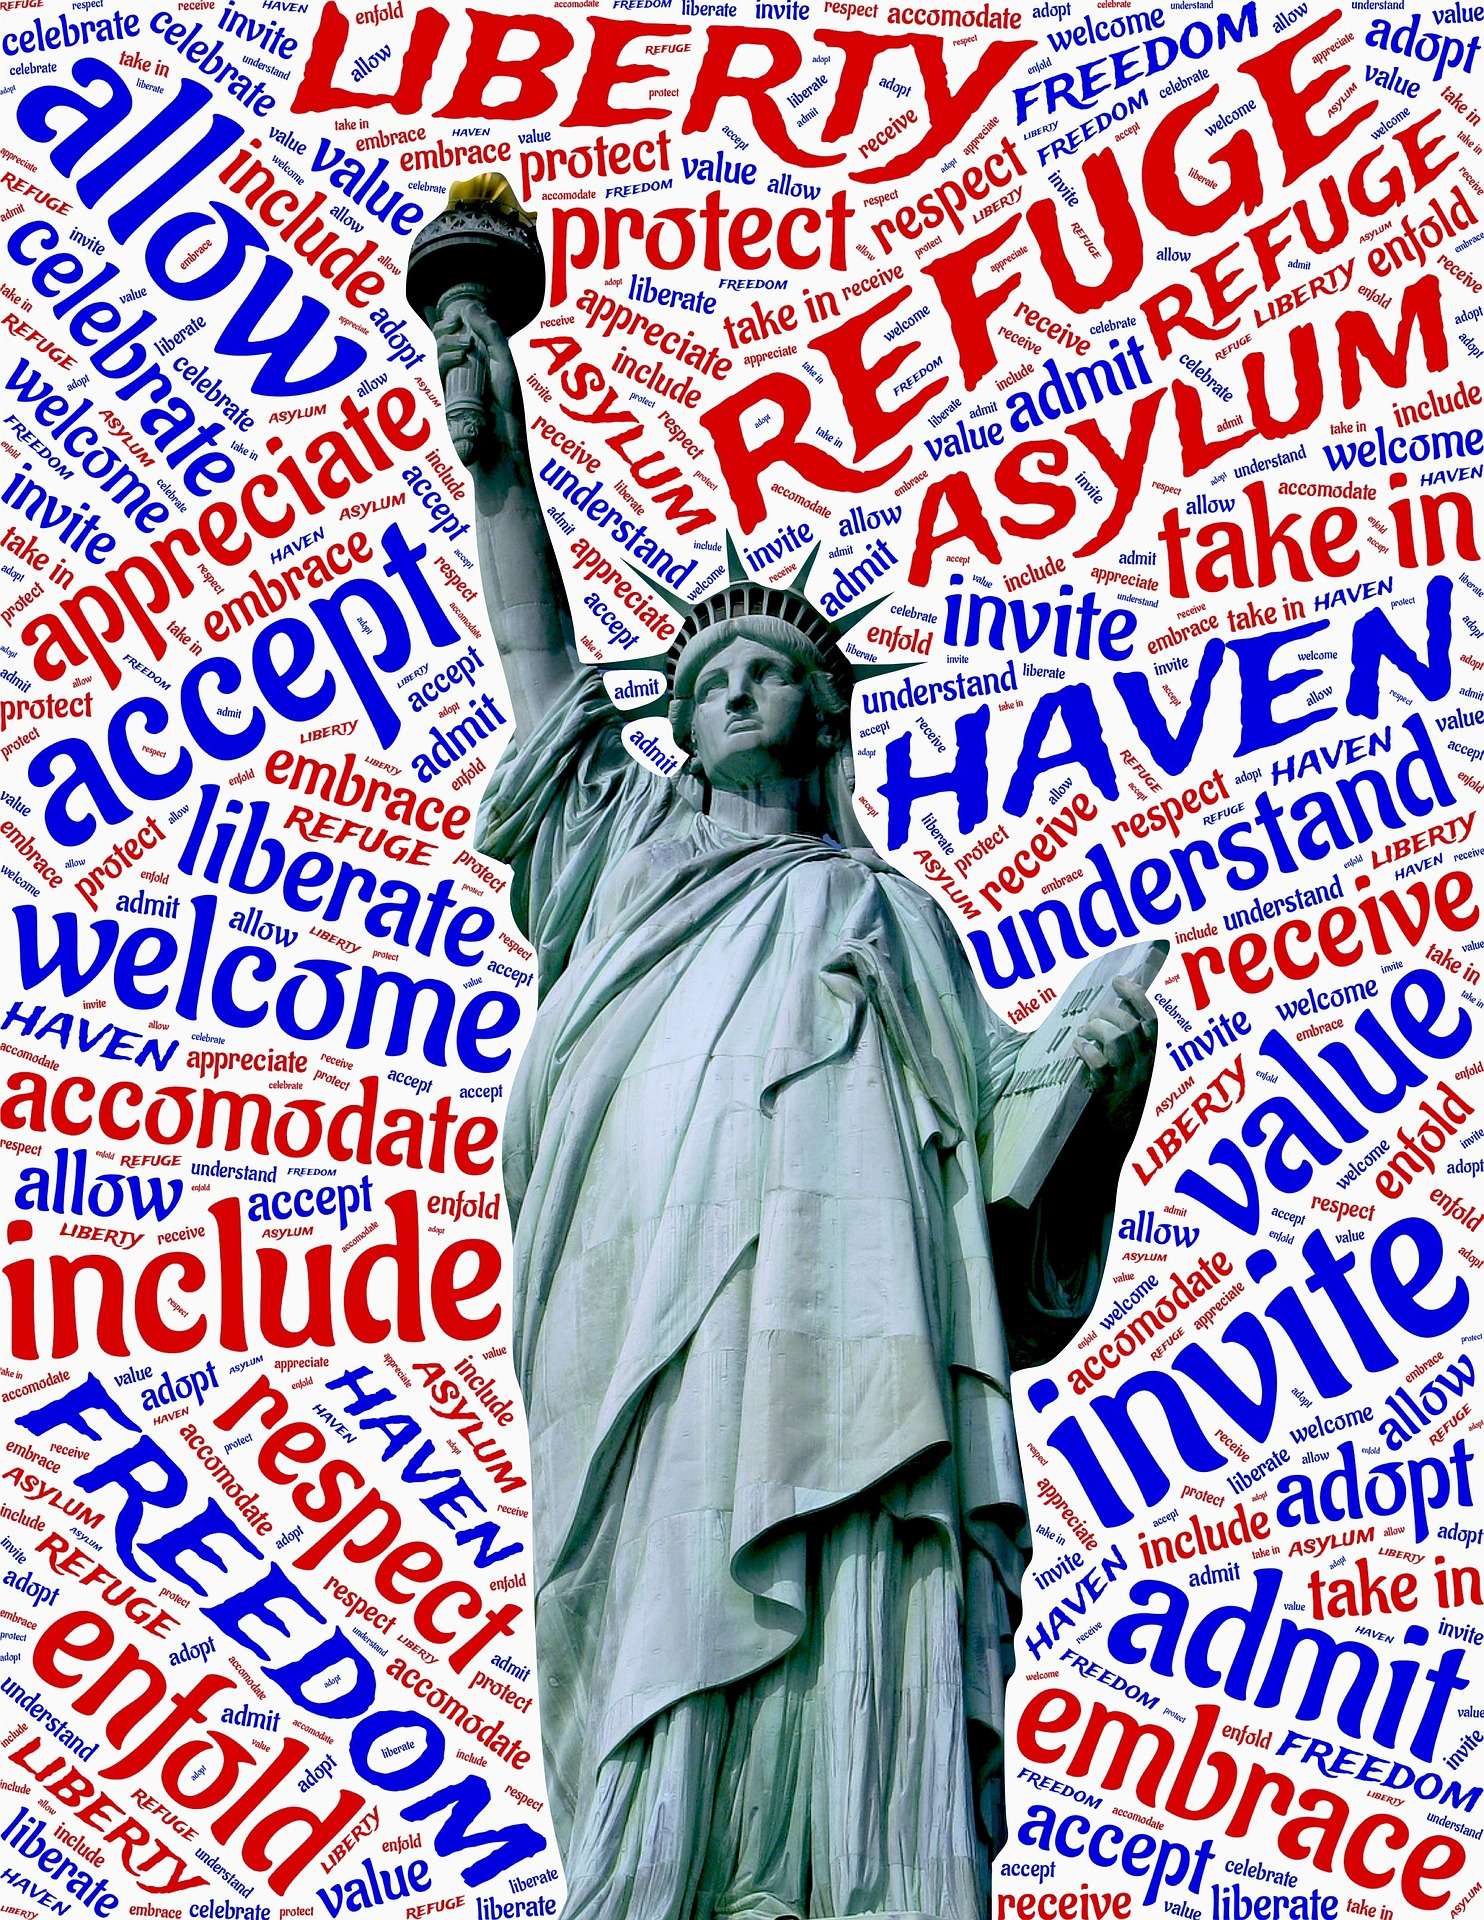 Statue of Liberty graphic: refuge, respect, receive, haven, invite, celebrate, take in, literate, appreciate, admit, embrace, liberate, asylum, adopt, value, liberty, protect, welcome, accept, enfold, allow, freedom, understand.